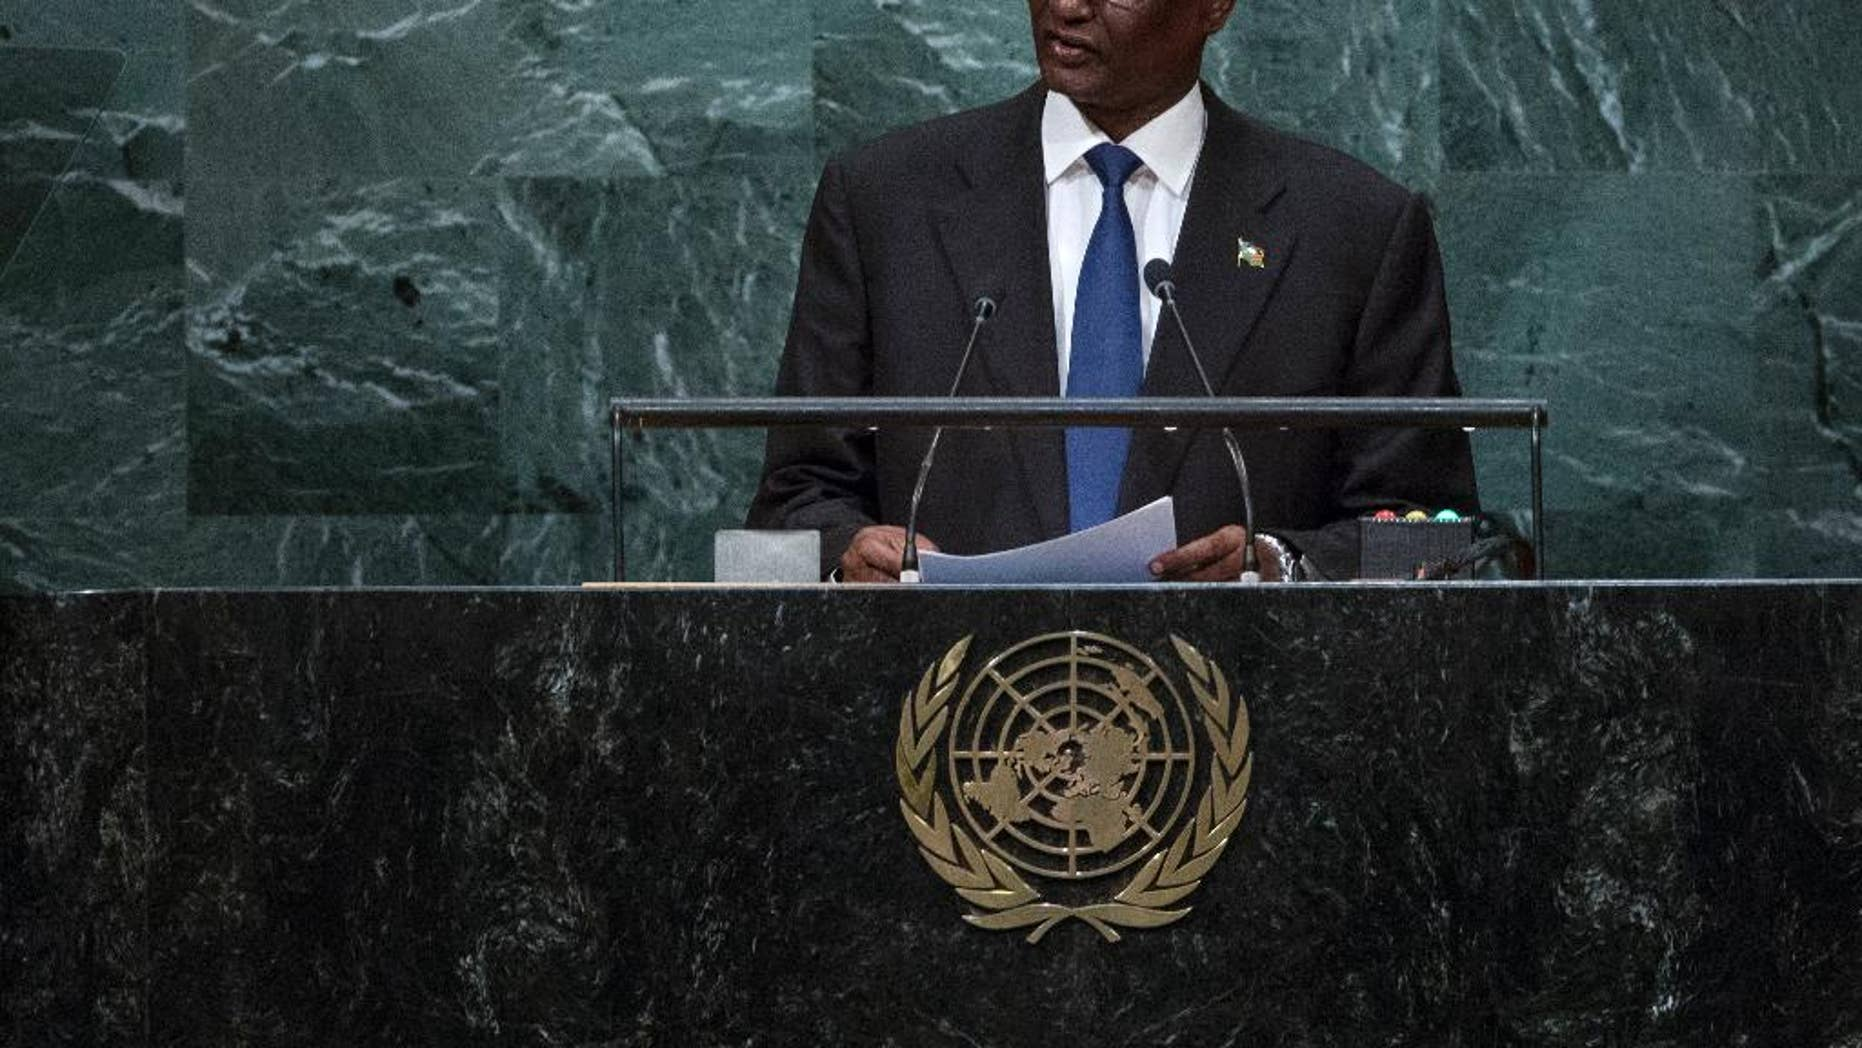 South Sudan's Vice President Taban Deng Gai addresses the 71st session of the United Nations General Assembly, at U.N. headquarters, Friday, Sept. 23, 2016. (AP Photo/Craig Ruttle)